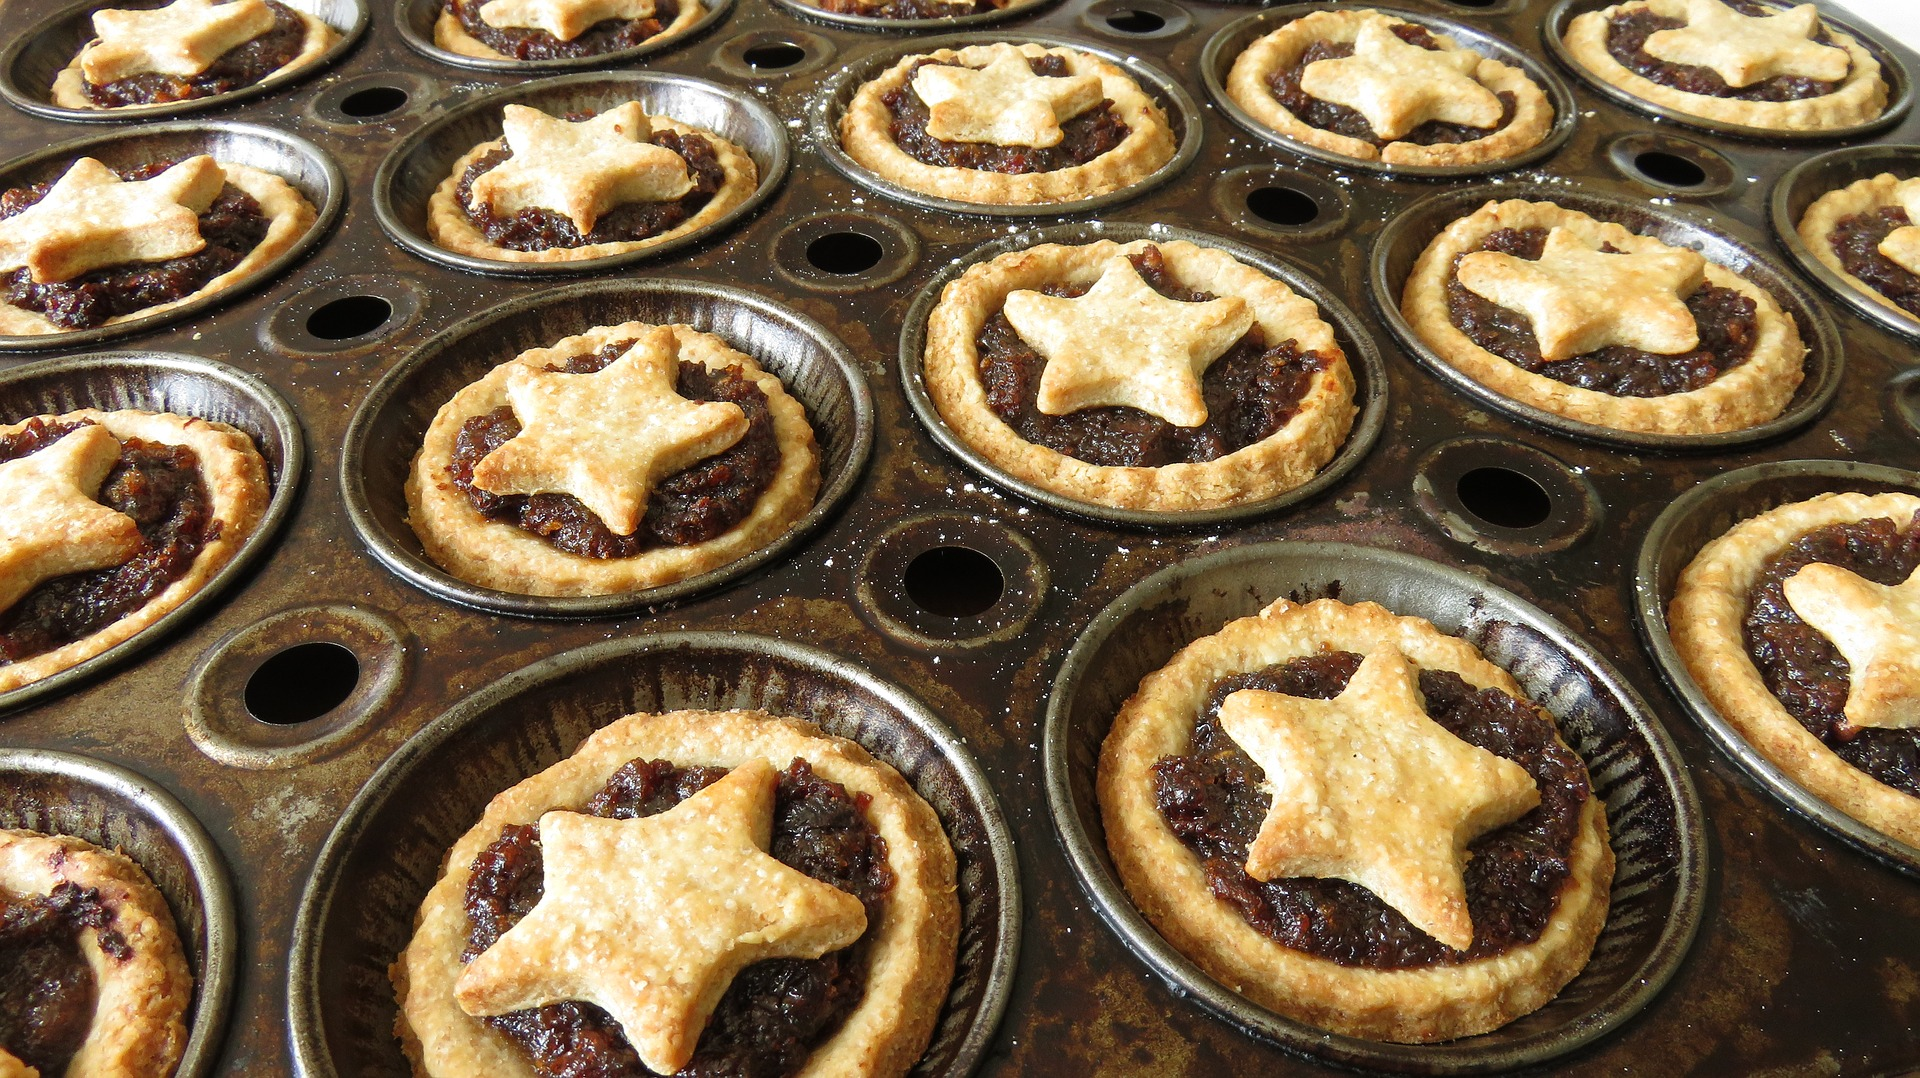 Couple Opening Shop On Xmas Day To Give Lonely People Hugs And Mince Pies mince pies 3023649 1920